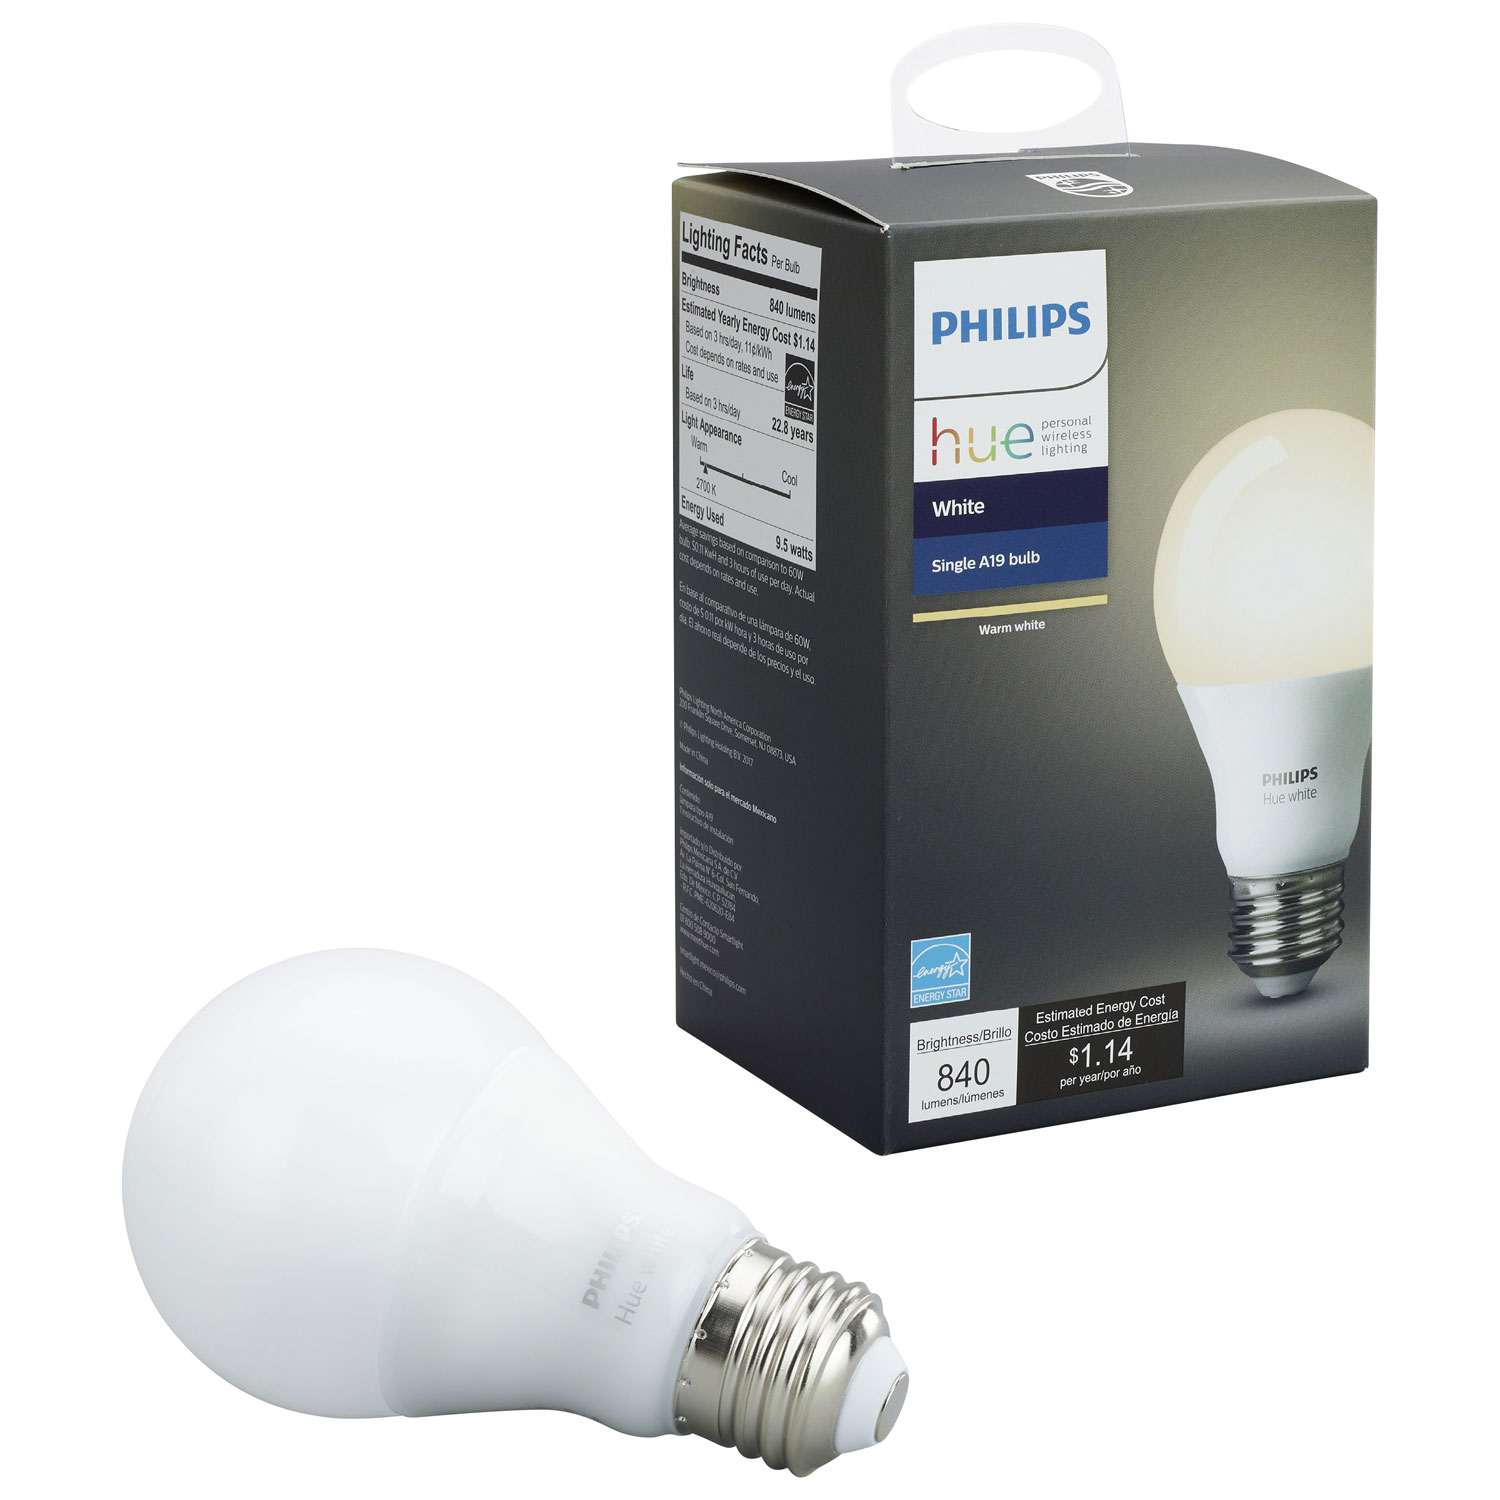 Philips Hue A19 Smart Led Light Bulb White Lights Best If A Is Used Instead Of The Connections Will Require Bit Buy Canada